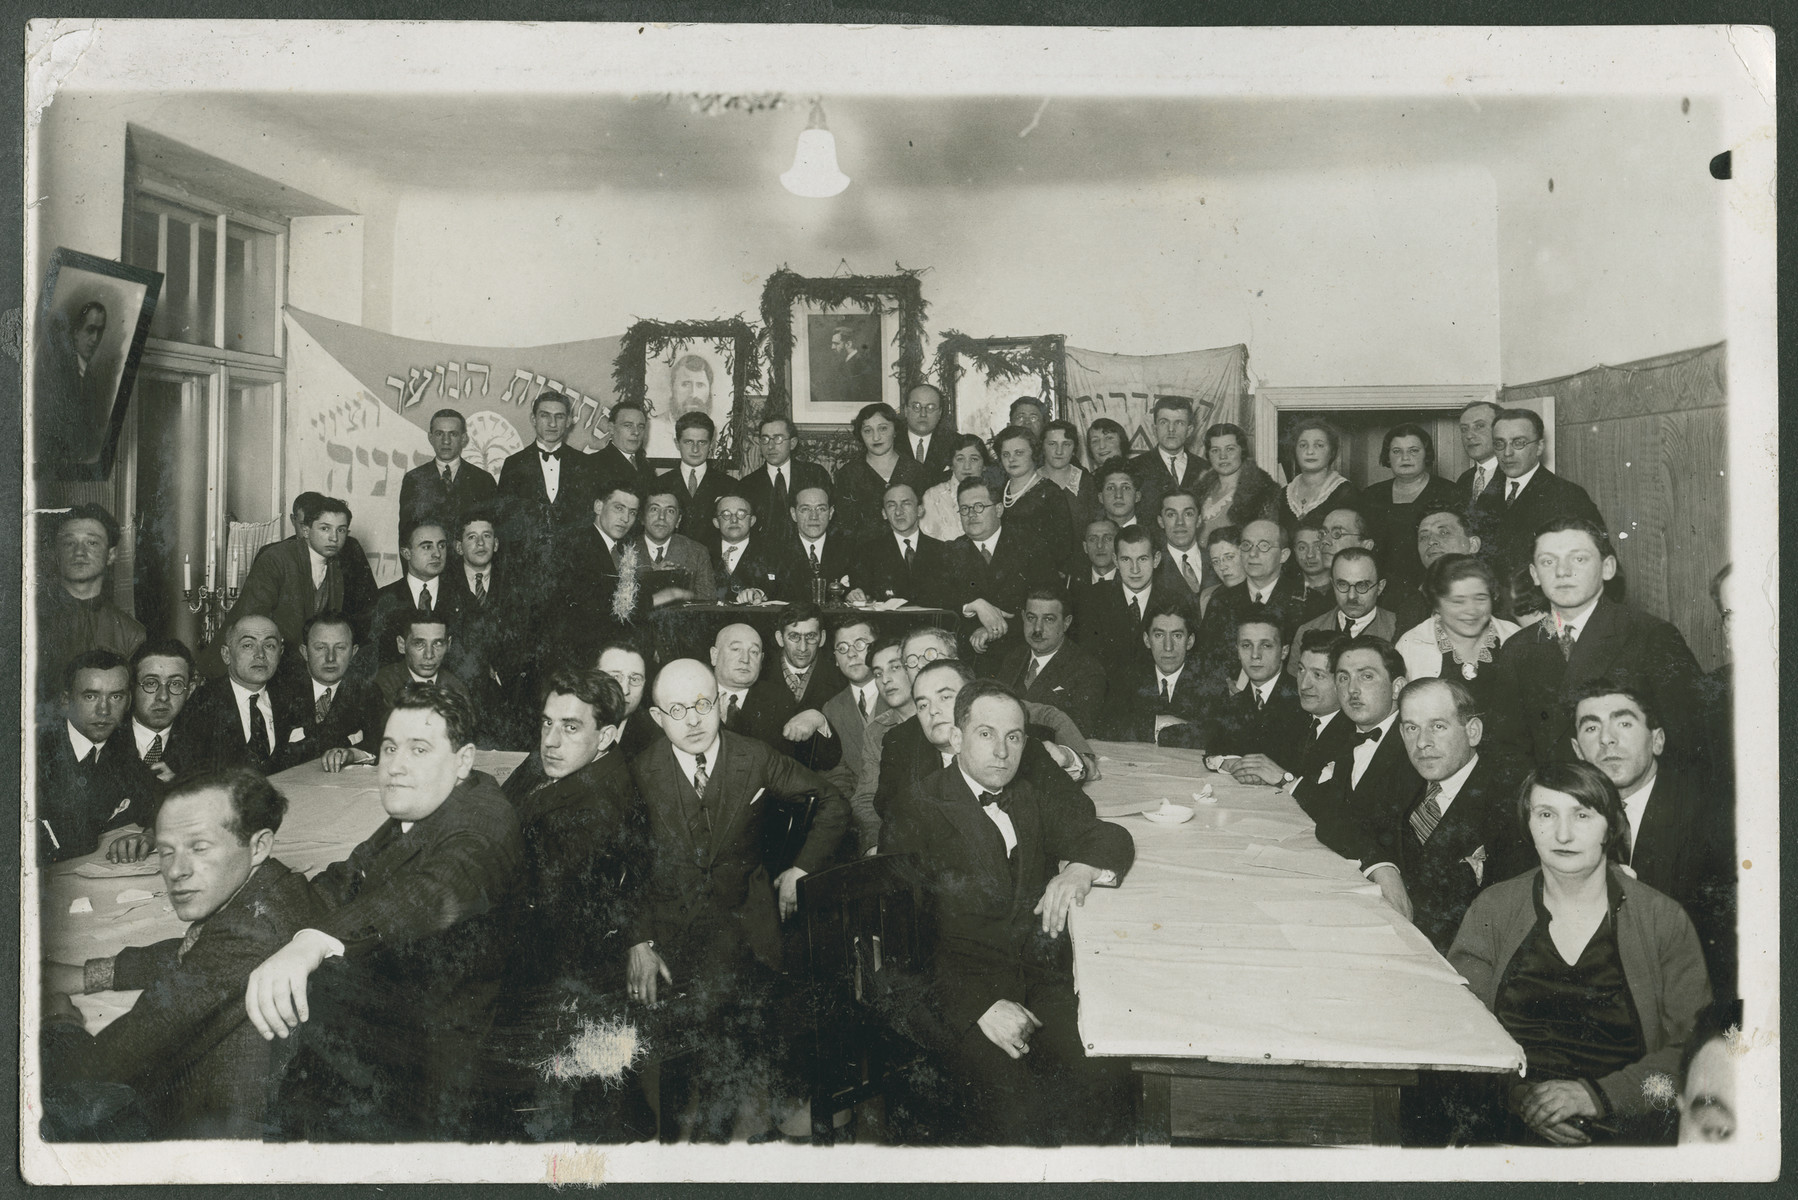 Meeting of a Zionist group in either Latvia or Lithuania.    Zionist flags and a portrait of Theodor Herzl hang on the walls.  Samuel Gotz is pictured in the front, second from the left.